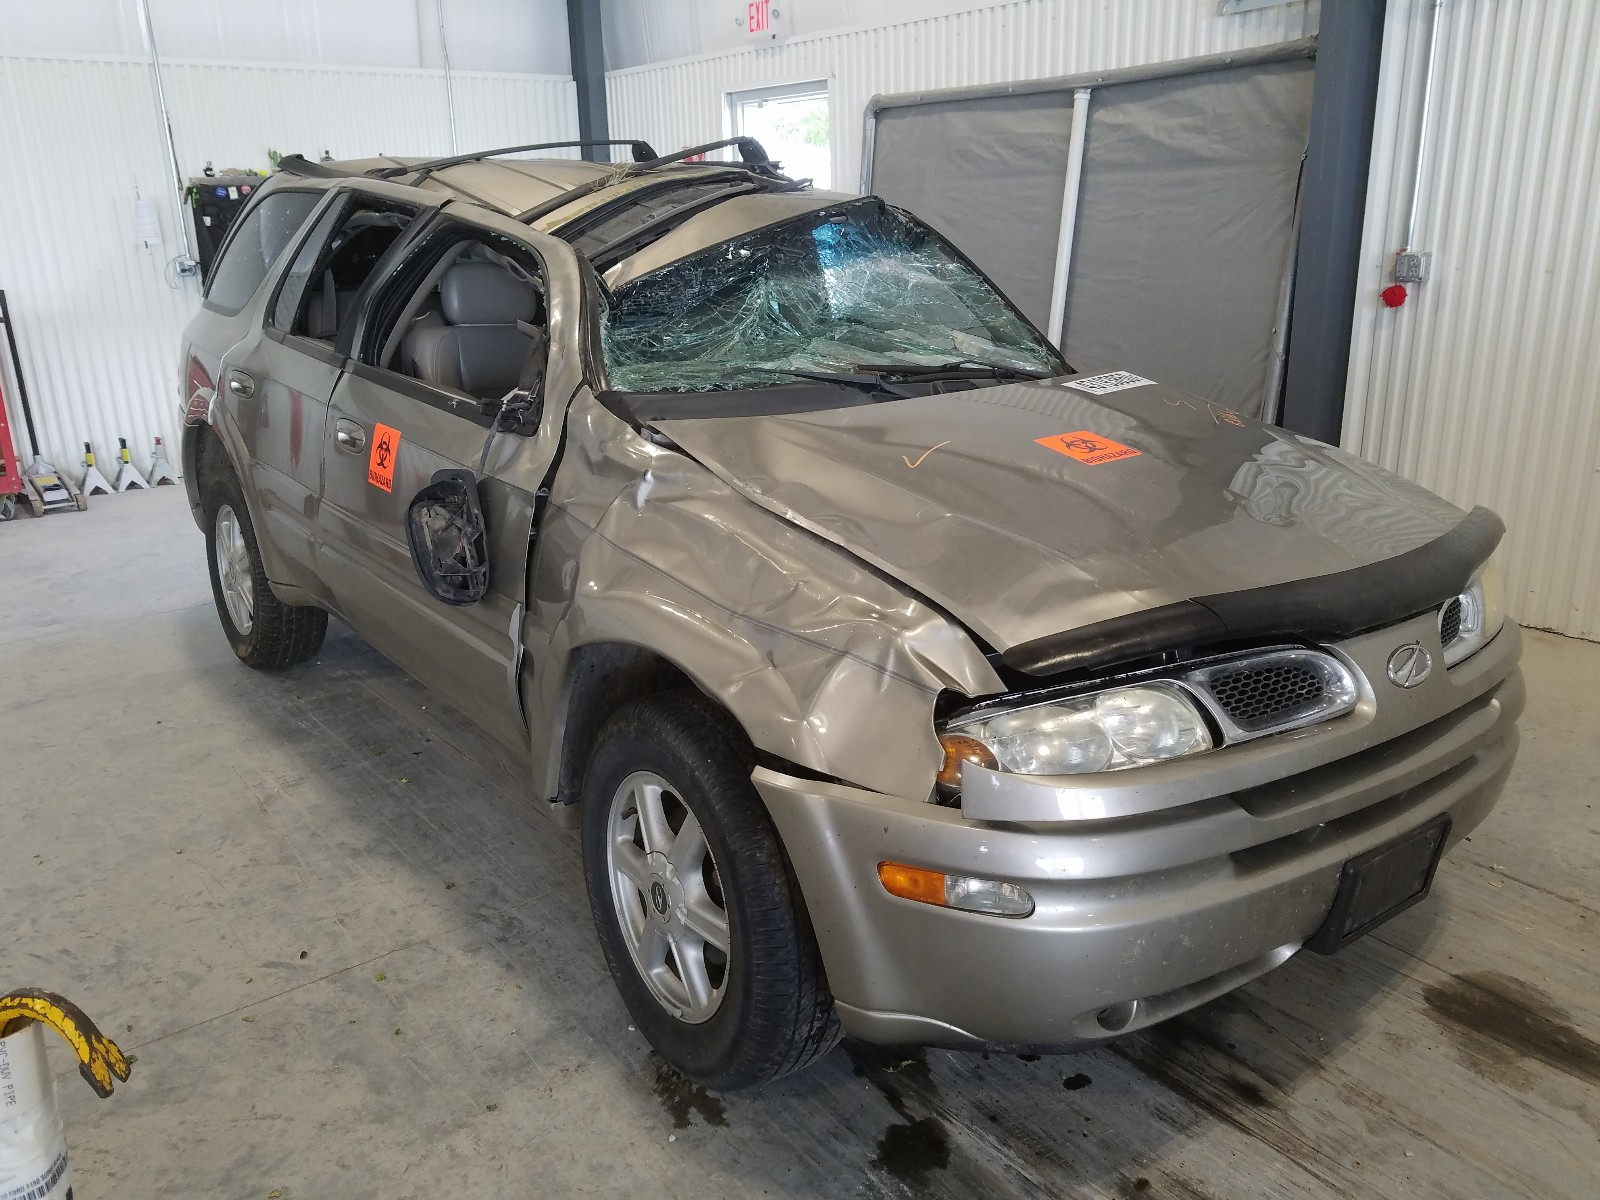 2003 oldsmobile bravada for sale at copart greenwood ne lot 43193850 salvagereseller com salvagereseller com